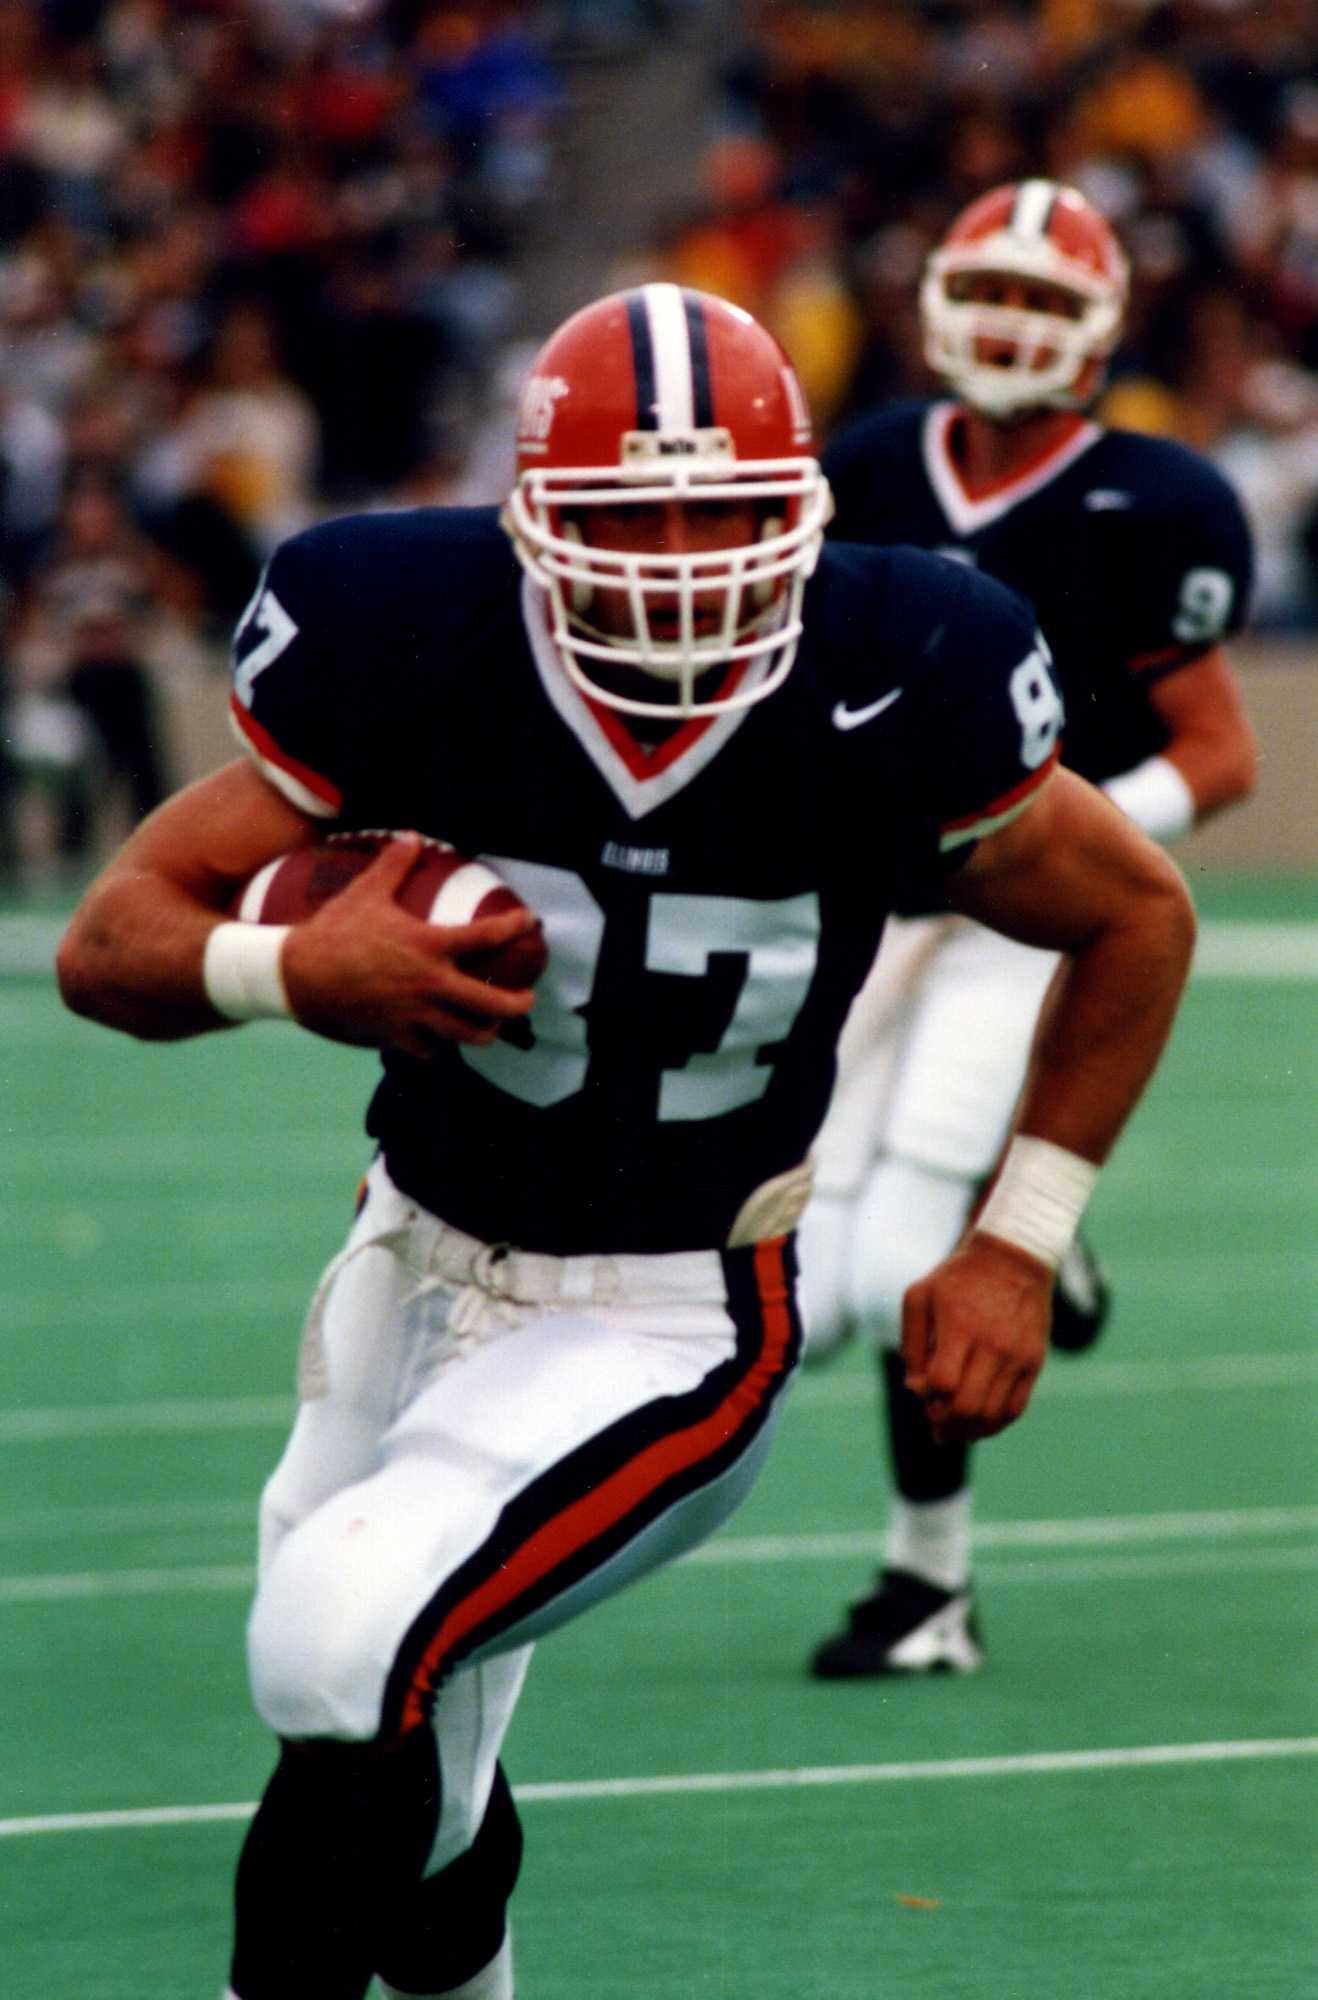 %3Cp%3EJosh+Whitman+is+Illinois%27+candidate+for+athletic+director.+He%27s+been+at+Illinois%2C+to+the+NFL+and+back%2C+but+what+has+he+done+since+the+last+time+he+worked+in+Champaign-Urbana%3F%3C%2Fp%3E